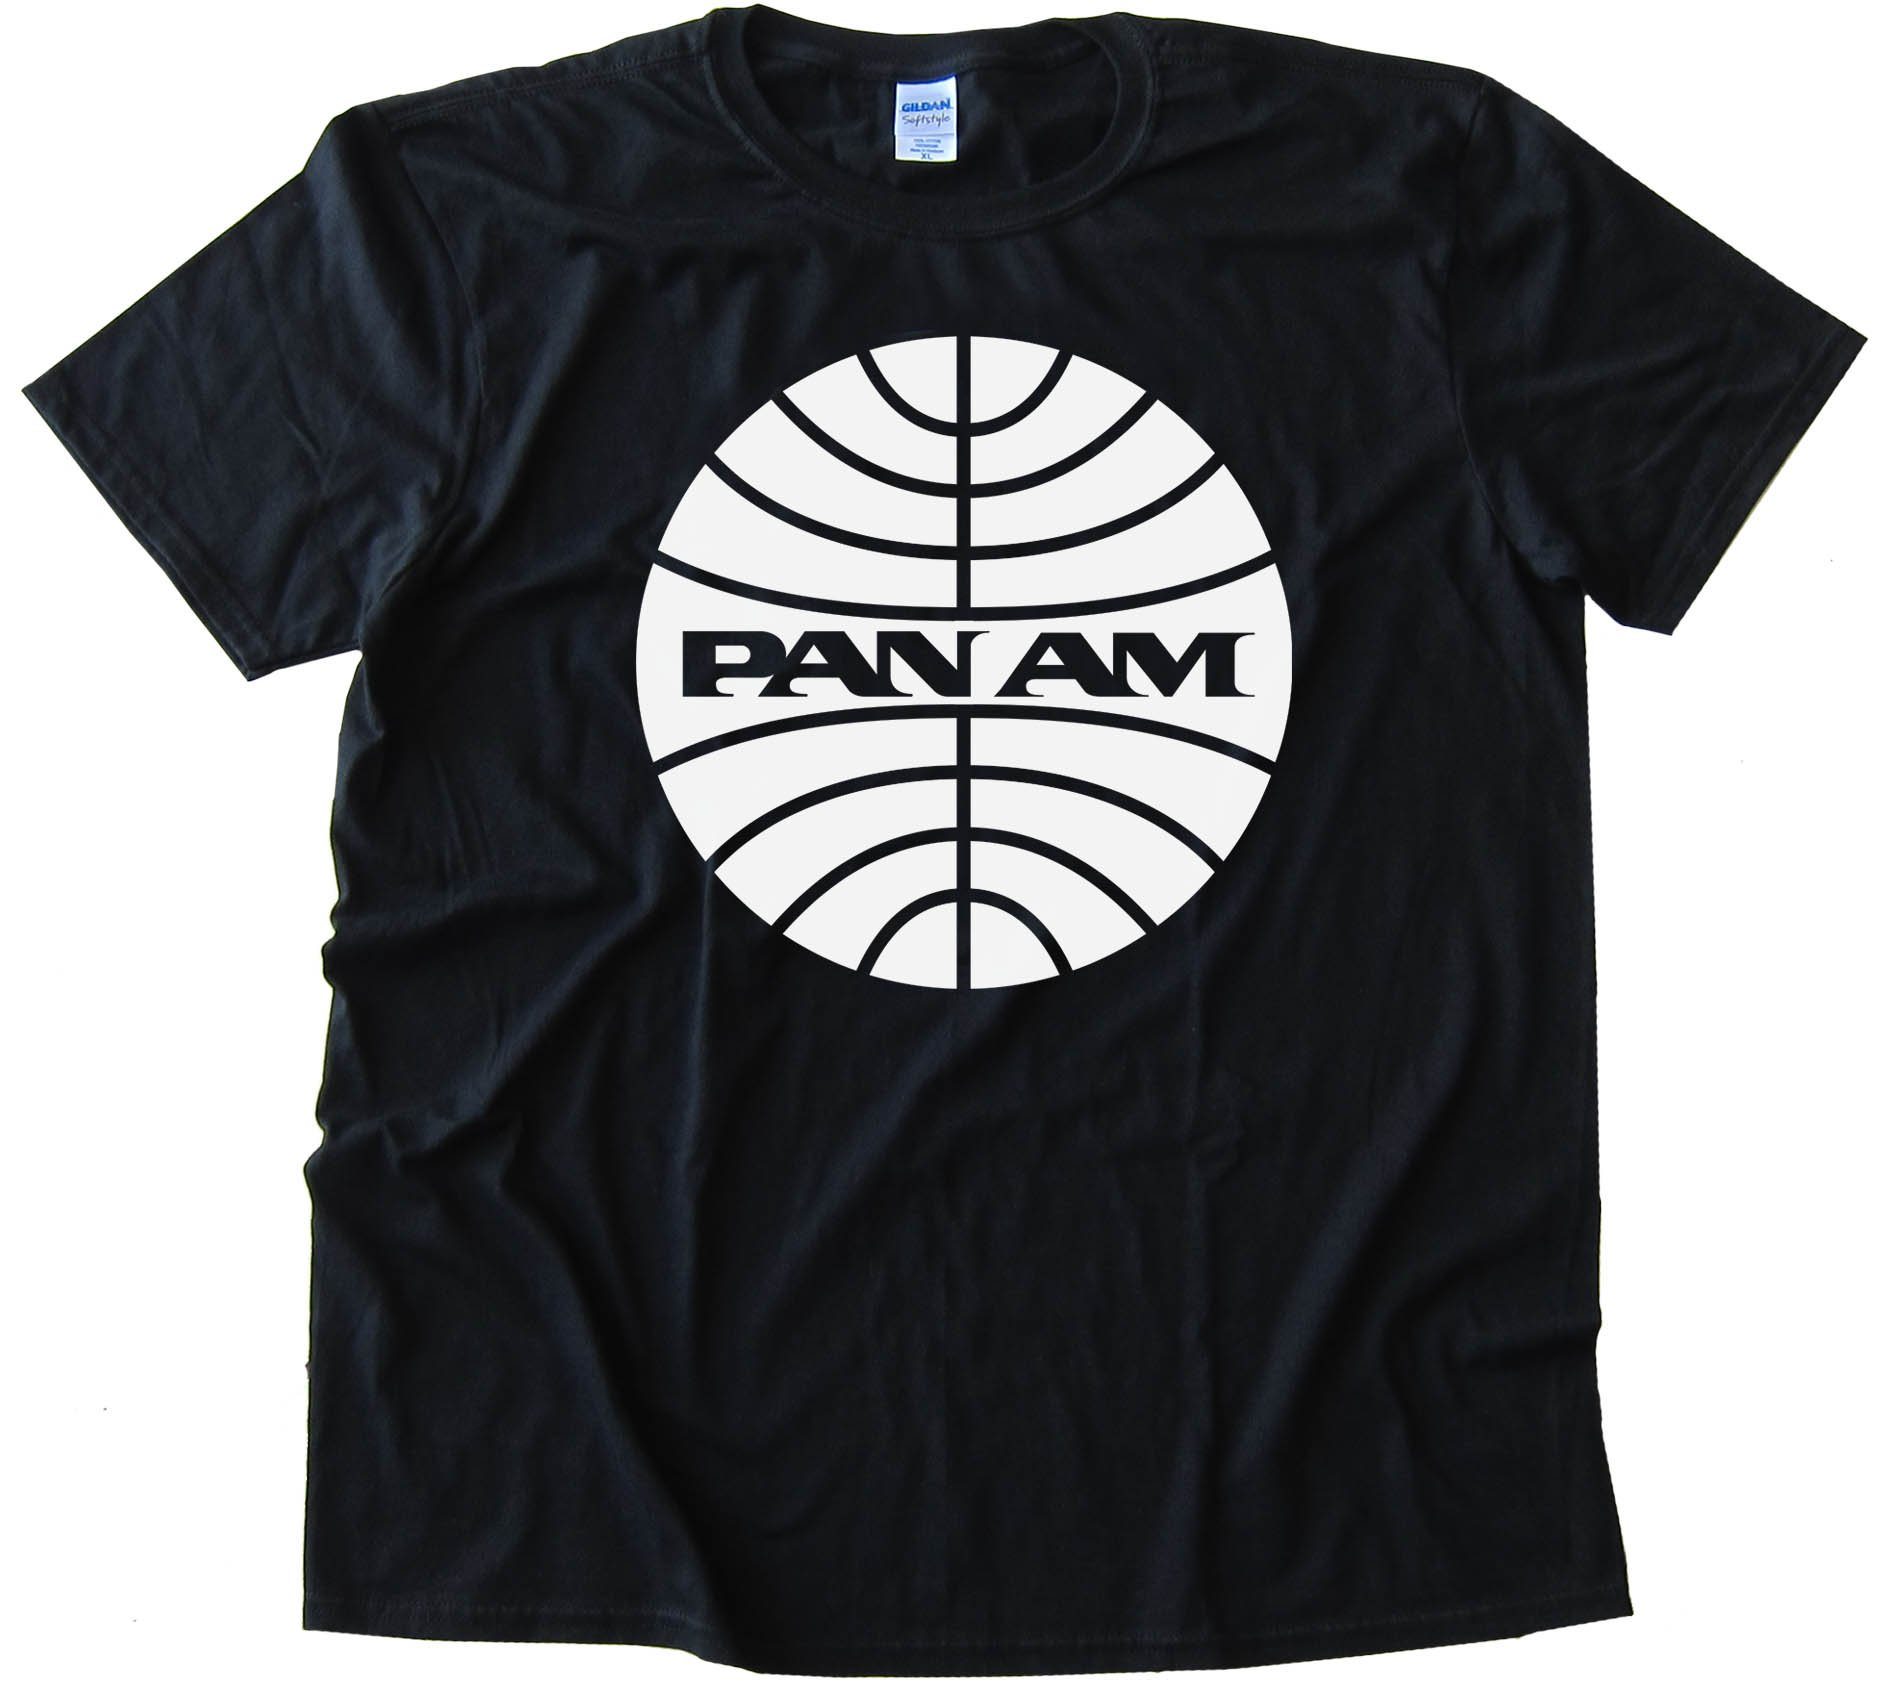 Pan Am Airlines Television Show - Tee Shirt